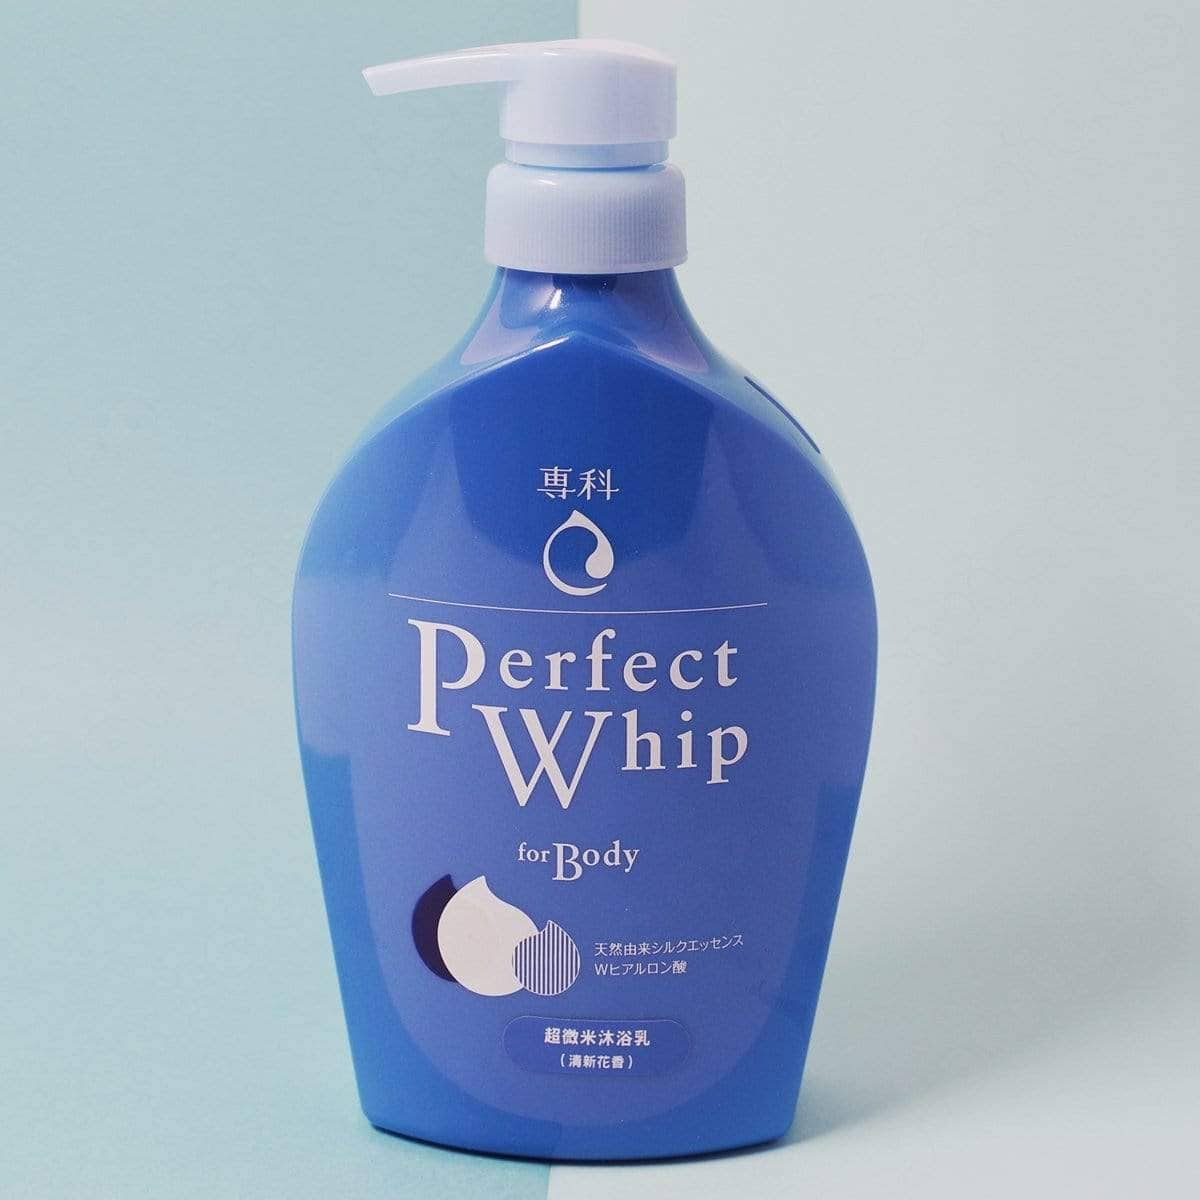 Senka Perfect Whip for Body Fresh Aroma Cleanser